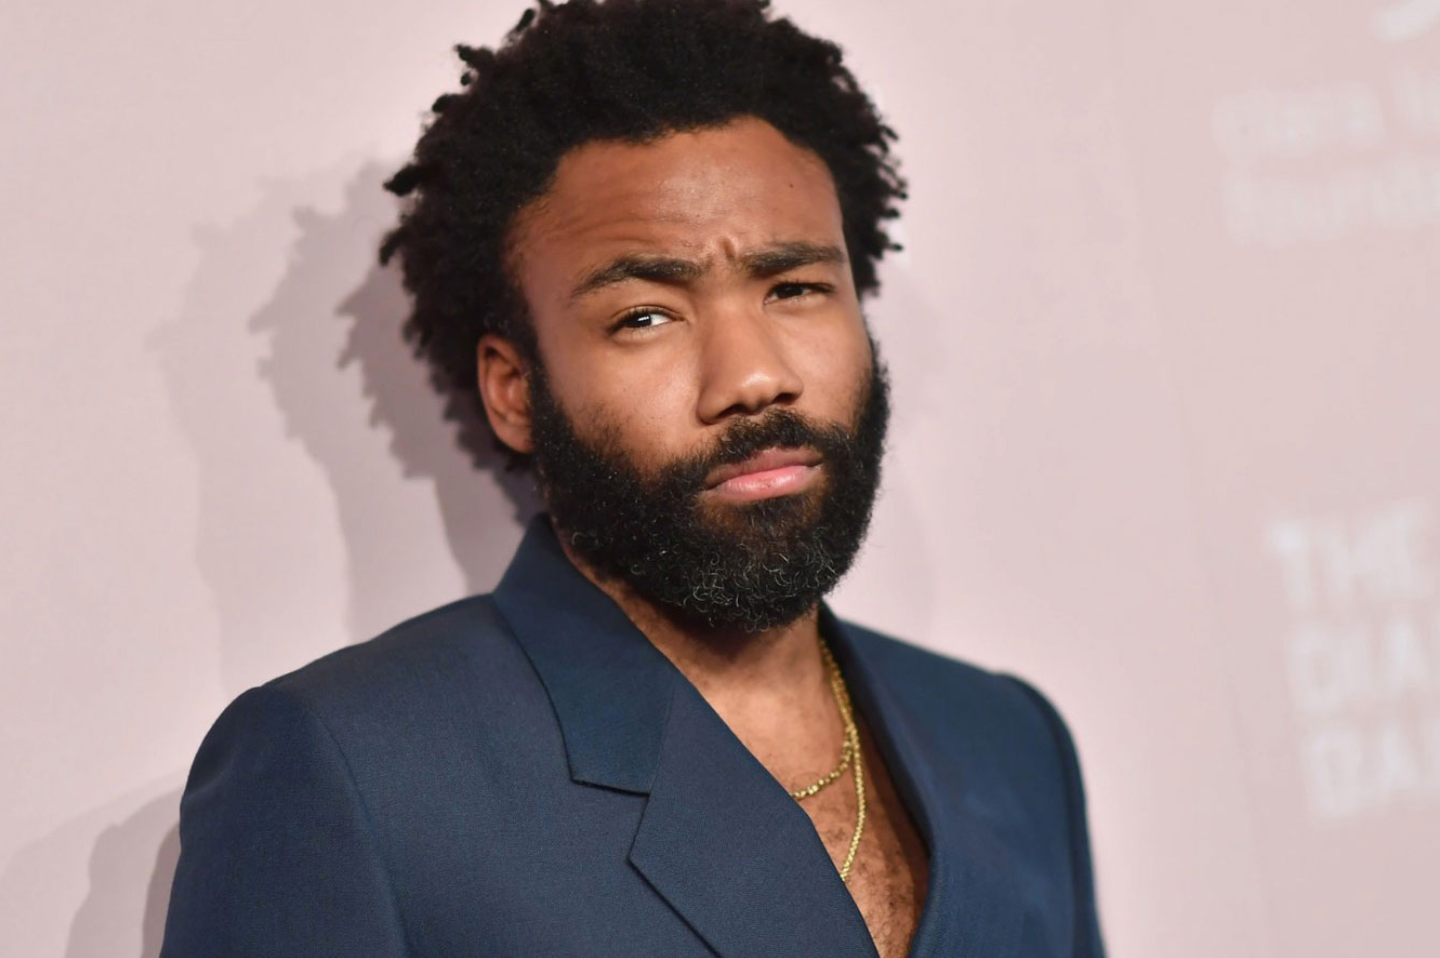 Donald Glover Drops Surprise Album